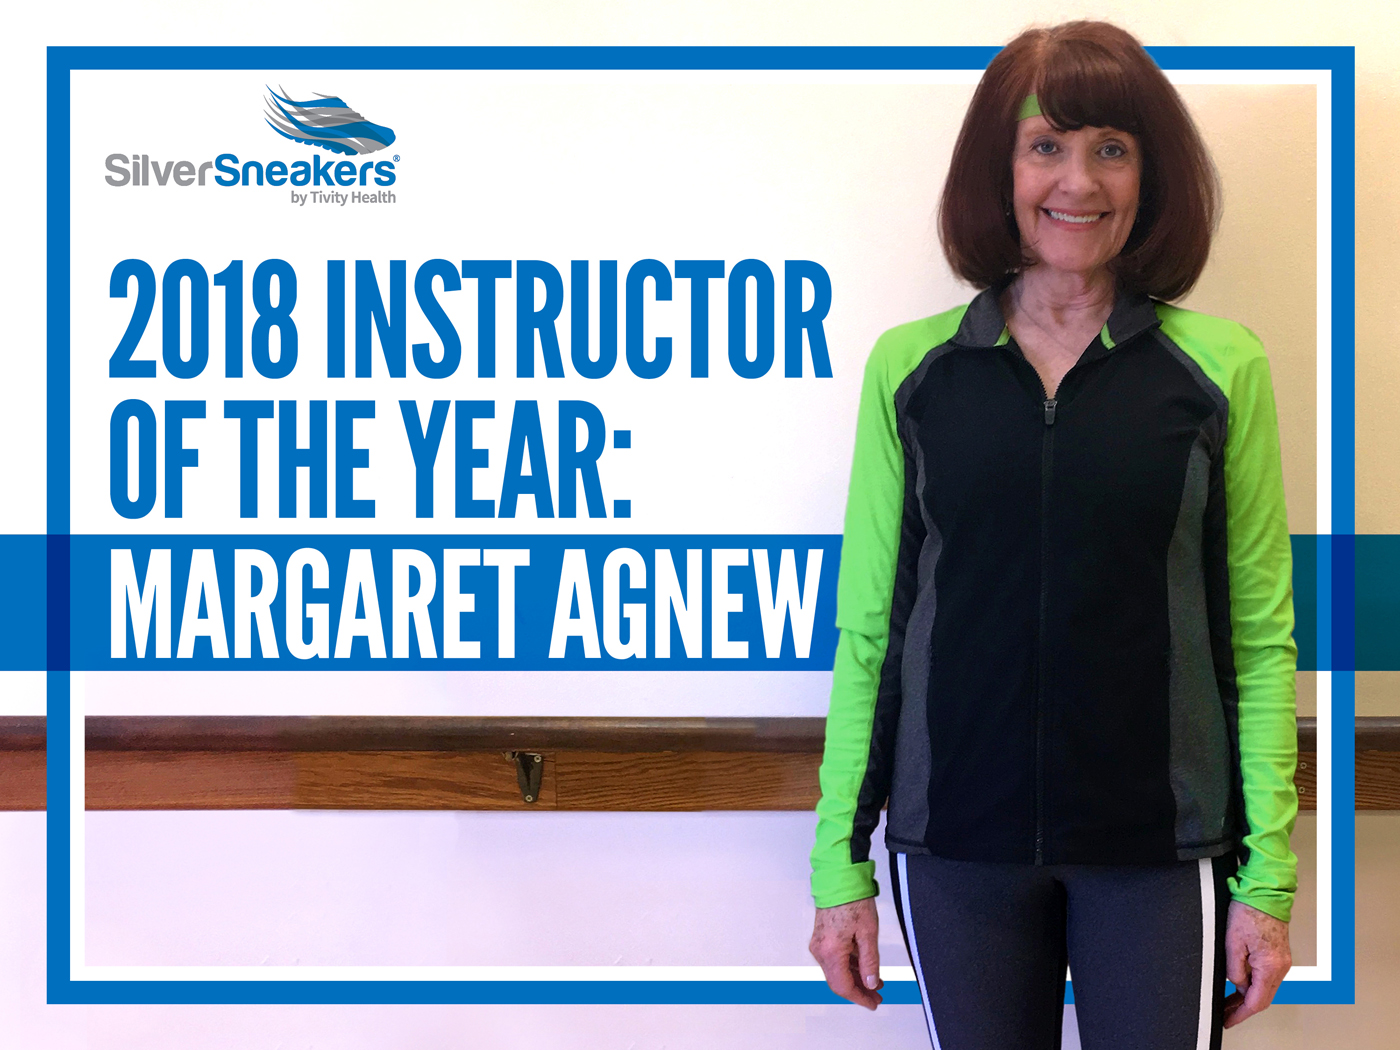 SilverSneakers 2018 Instructor of the Year Winner Margaret Agnew